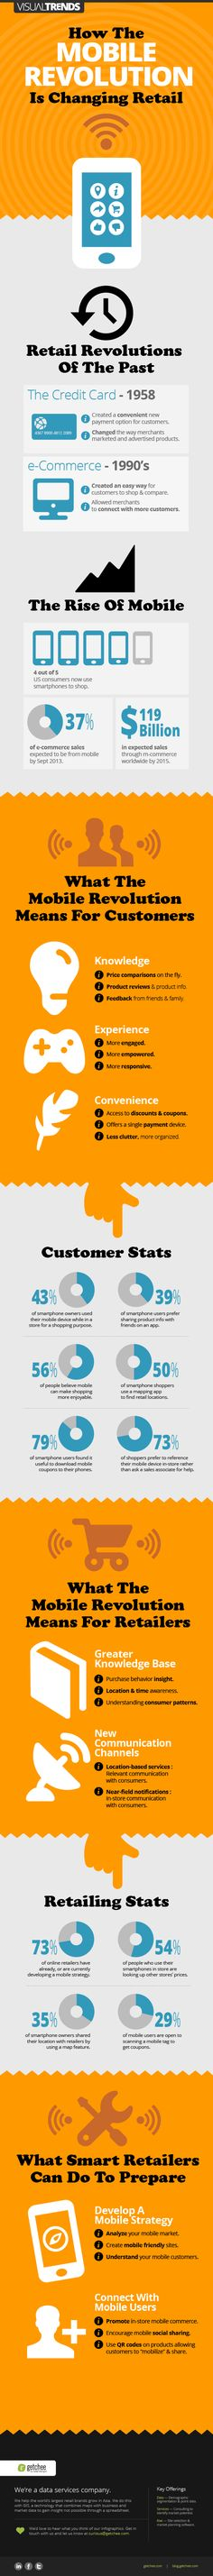 Mobile and retail go hand in hand. Some great stats to help retailers Infographic www.socialmediamamma.com